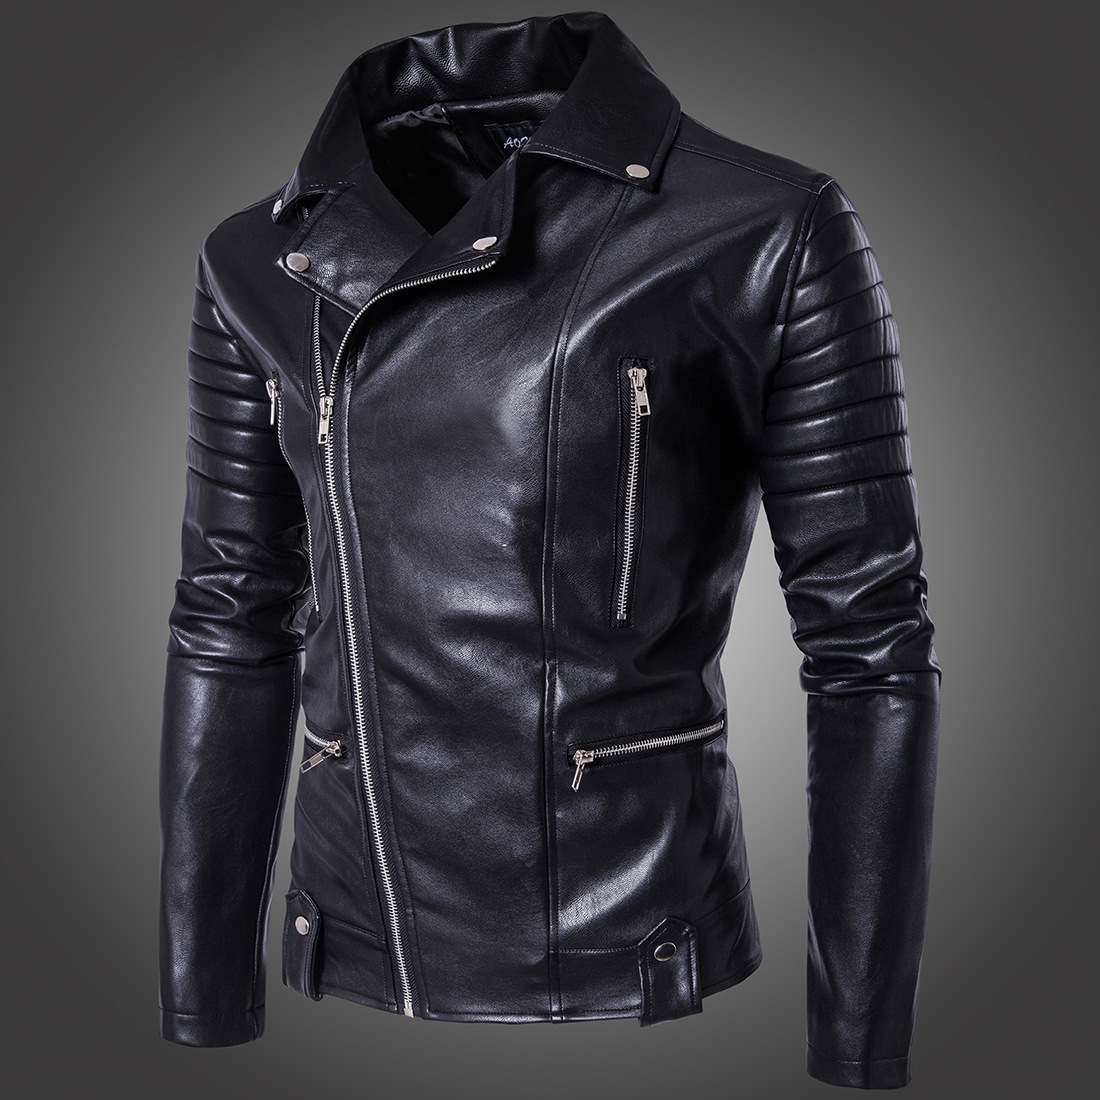 rebelsmarket_mens_punk_multi_zipper_biker_jacket_black_jackets_6.jpg